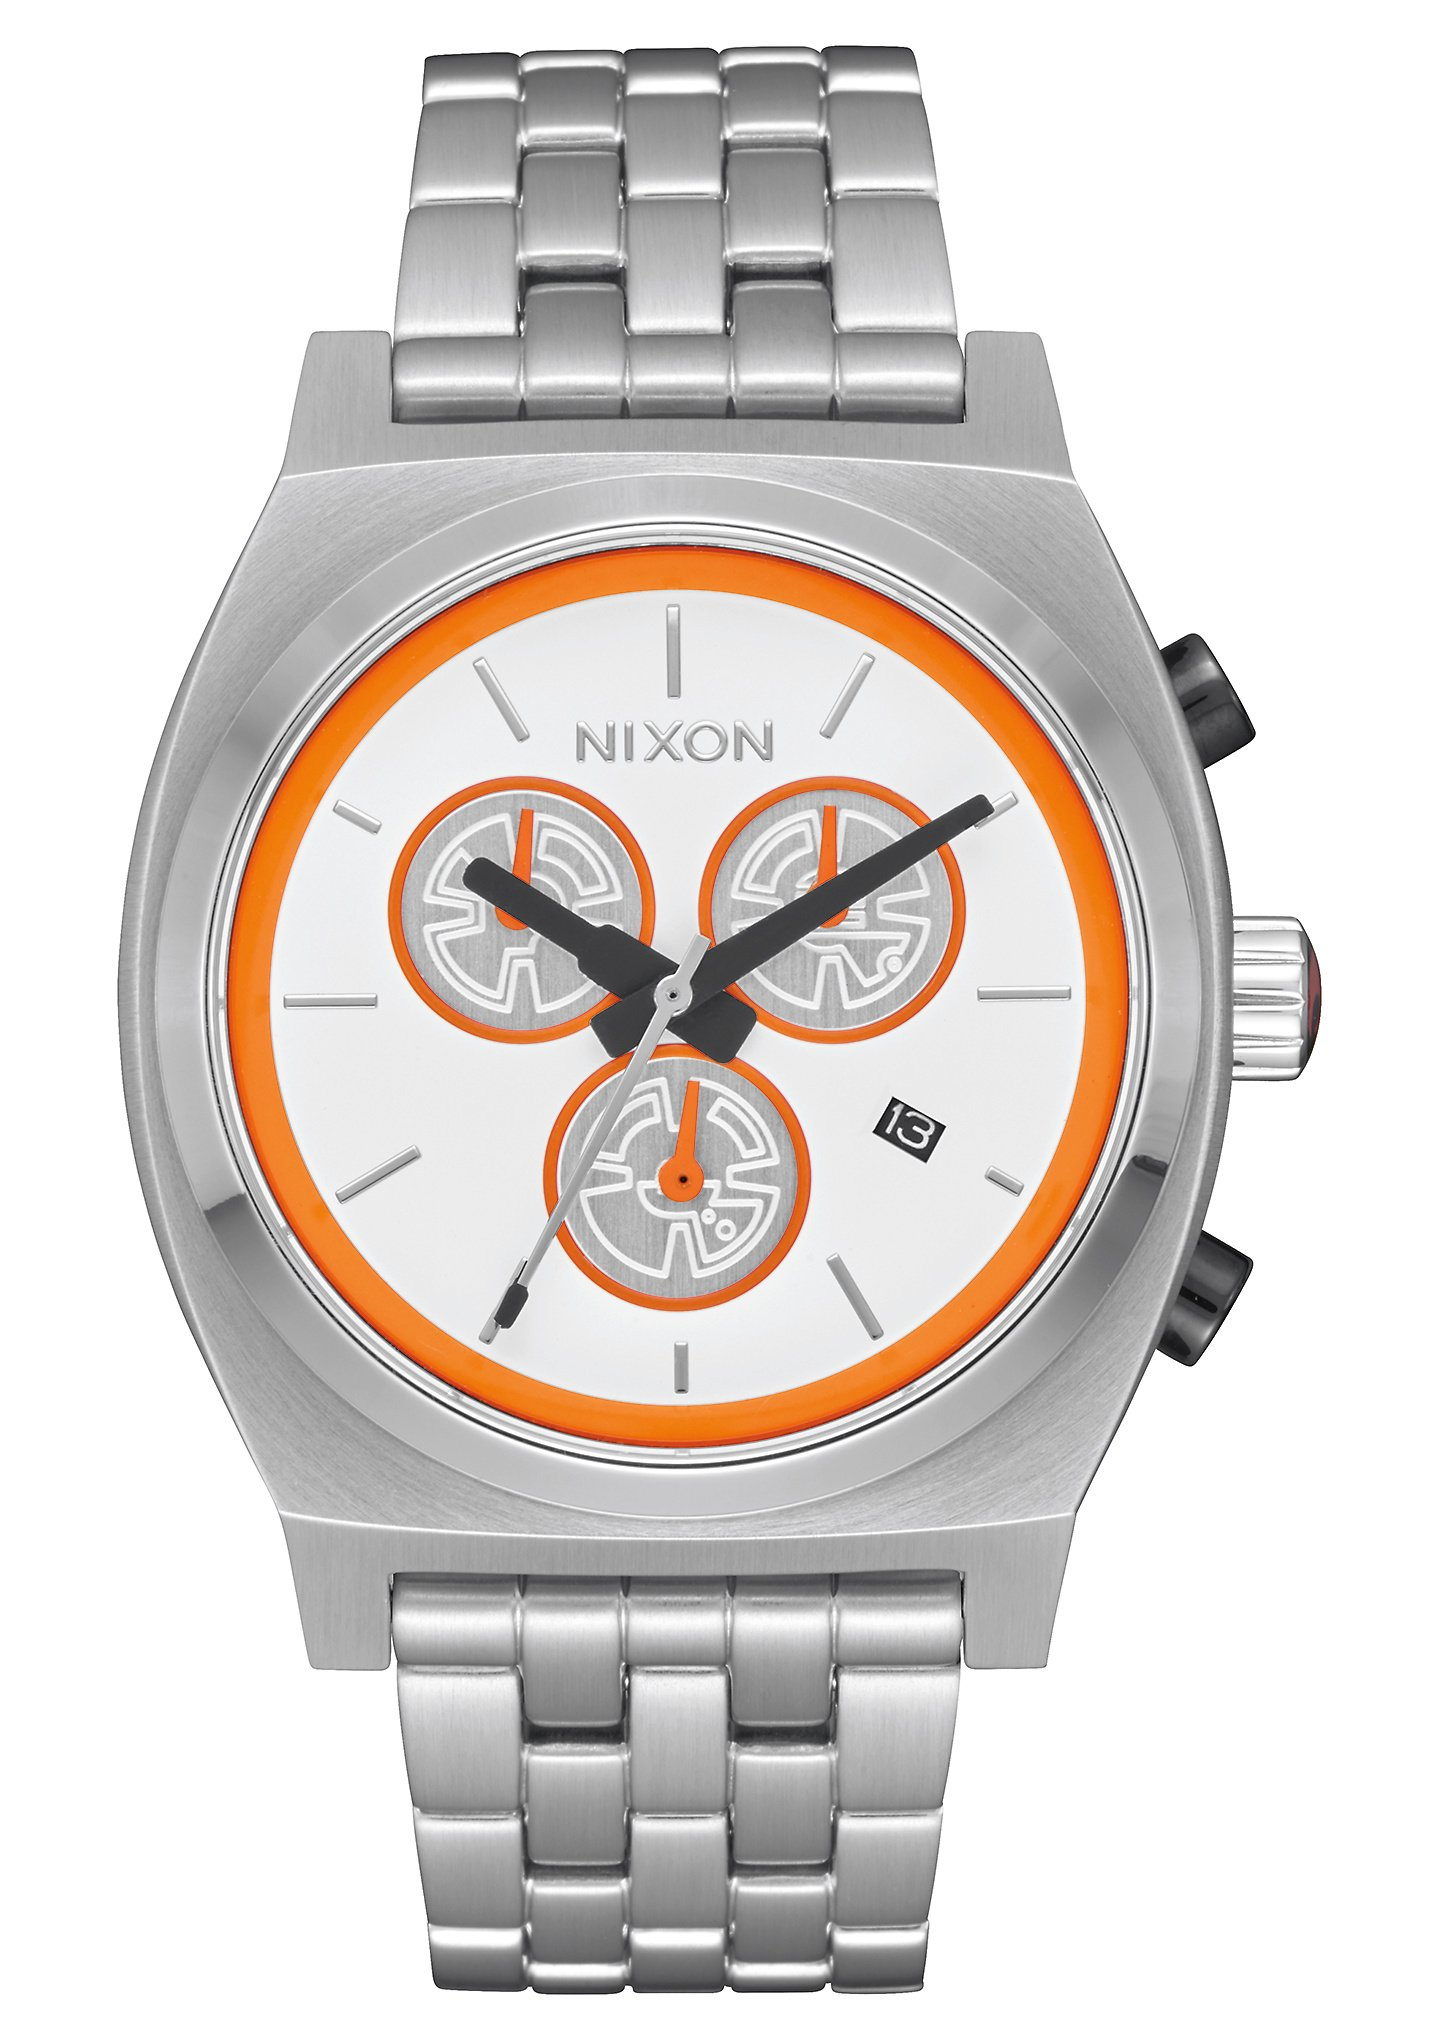 Nixon Unisex The Time Teller Chrono Watch X Star Wars Collab Bb-8 White/Orange Watch by NIXON